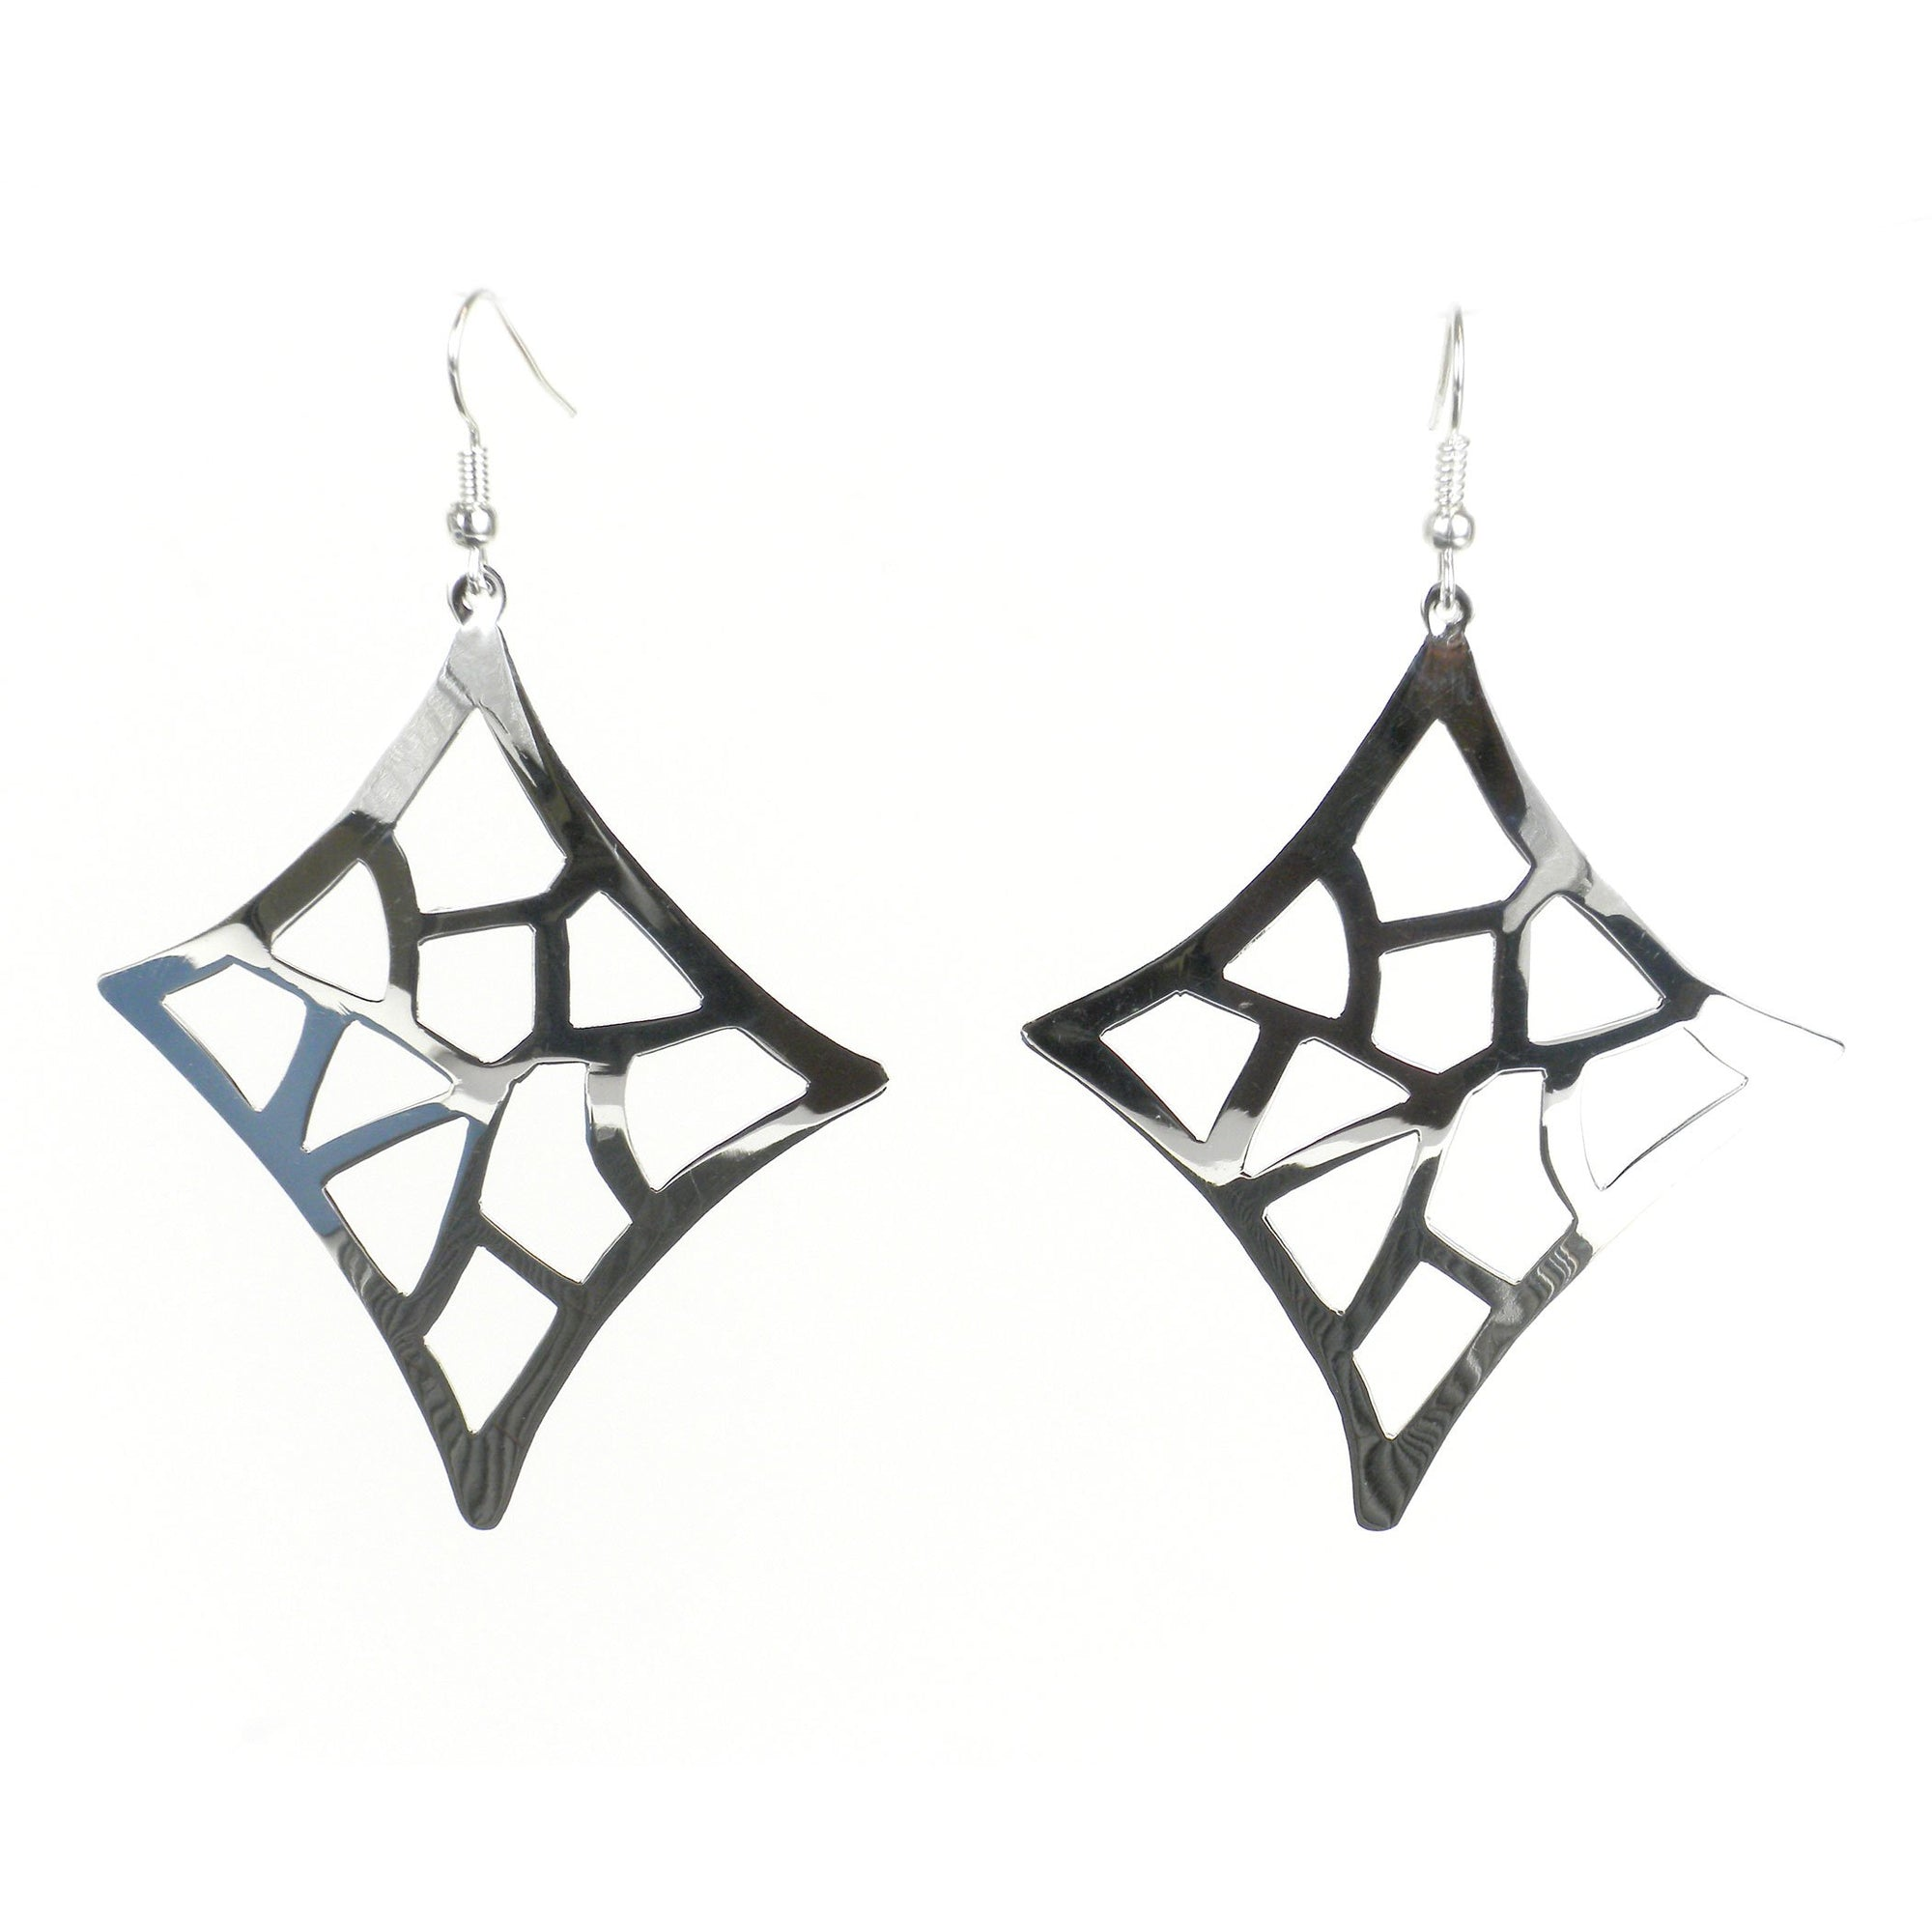 Large Silverplated Starlight Earrings - Artisana